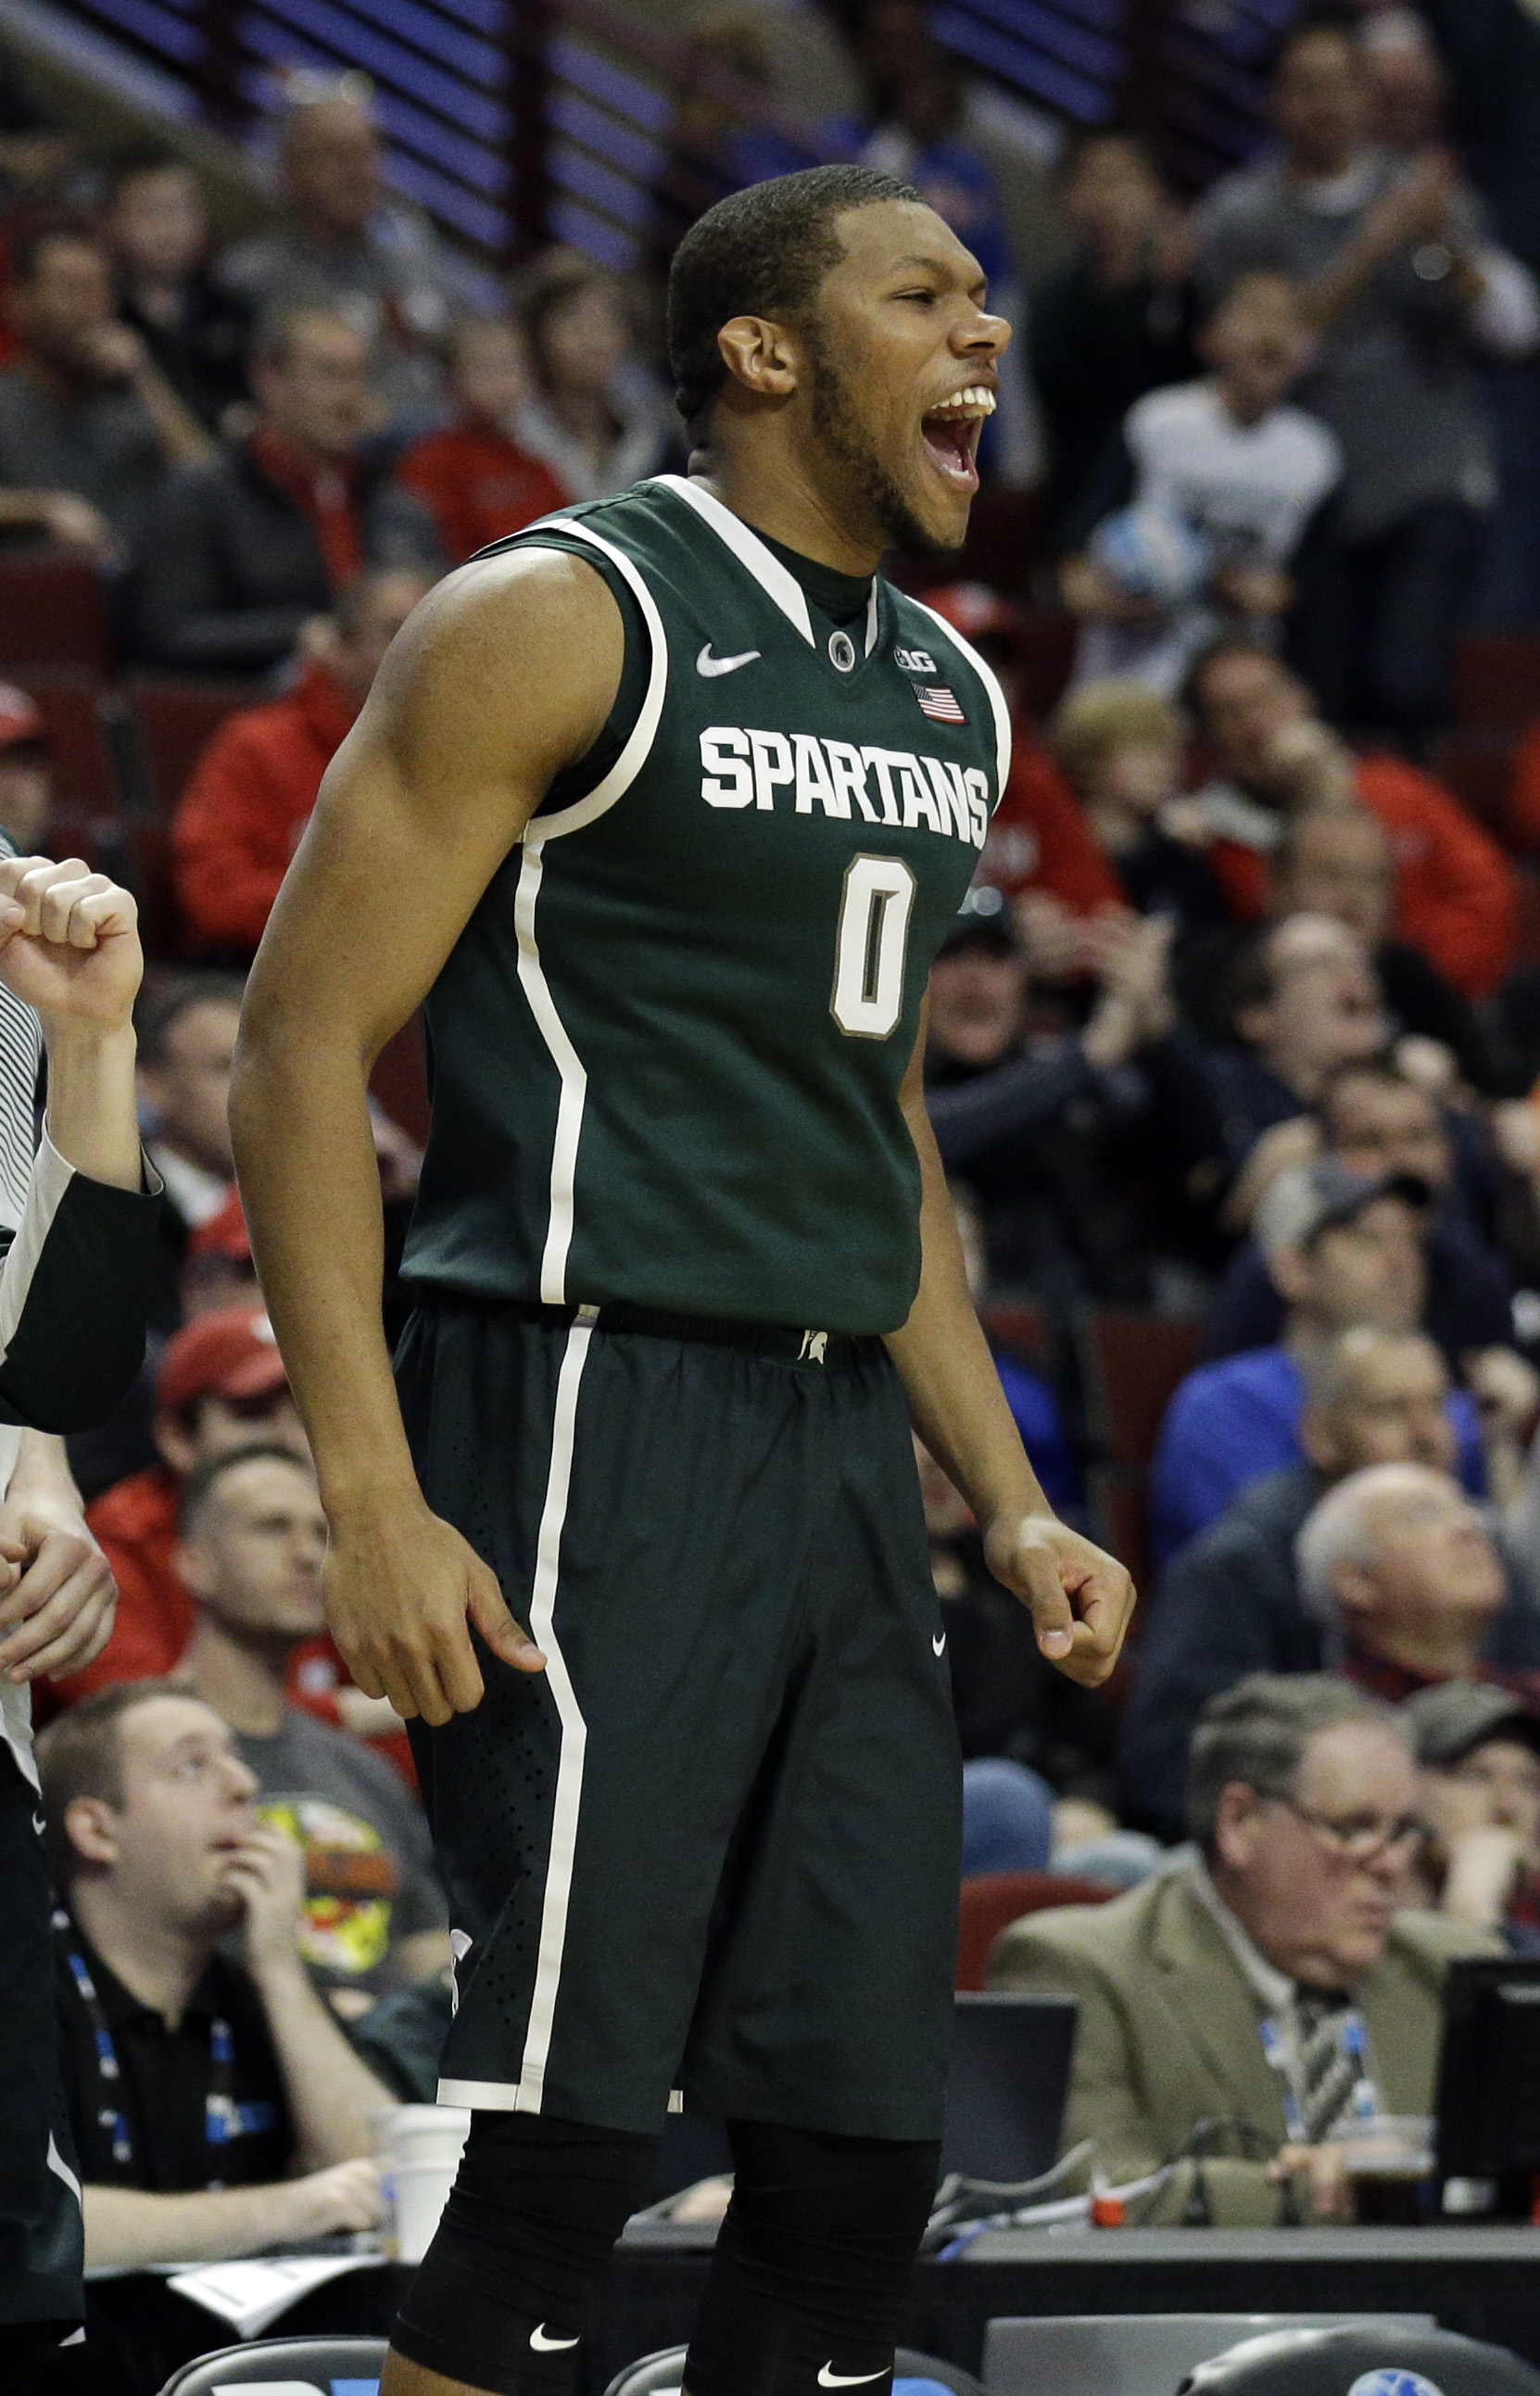 Michigan State's Marvin Clark Jr. (0) celebrate on the bench in the second half of an NCAA college basketball game against Maryland in the semifinals of the Big Ten Conference tournament in Chicago, Saturday, March 14, 2015. Michigan State defeated Maryla